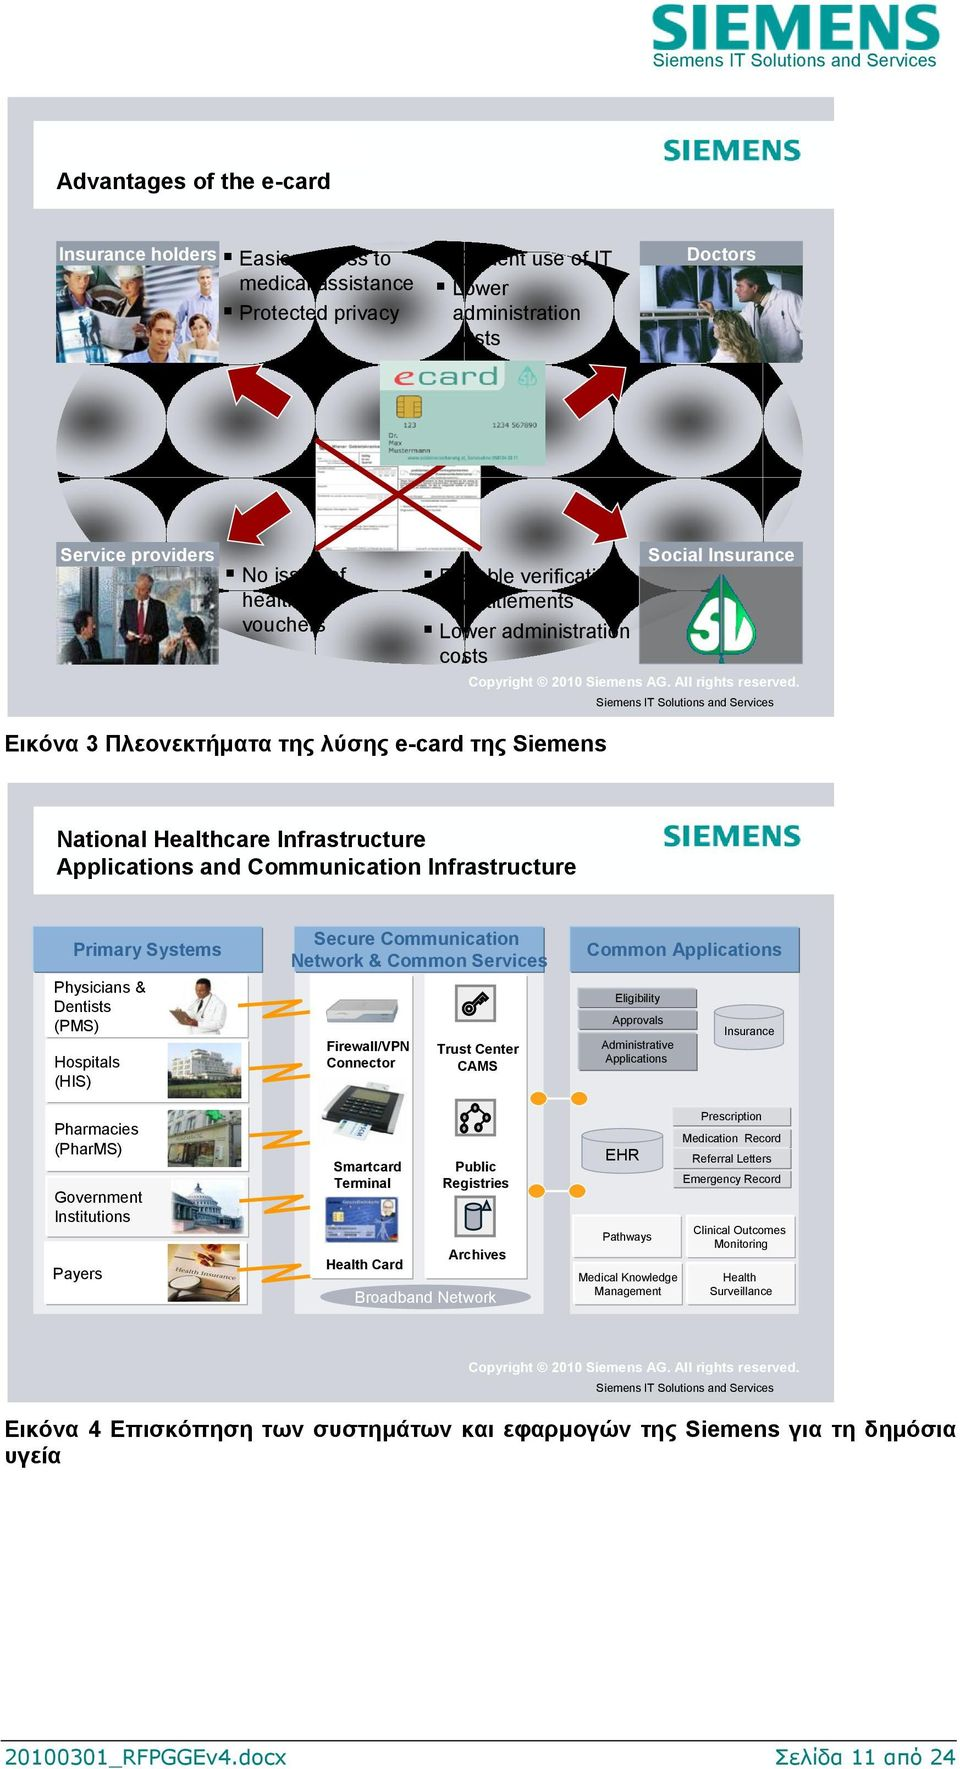 Siemens IT Solutions and Services Εηθόλα 3 Πιενλεθηήκαηα ηεο ιύζεο e-card ηεο Siemens National Healthcare Infrastructure Applications and Communication Infrastructure Primary Systems Physicians &